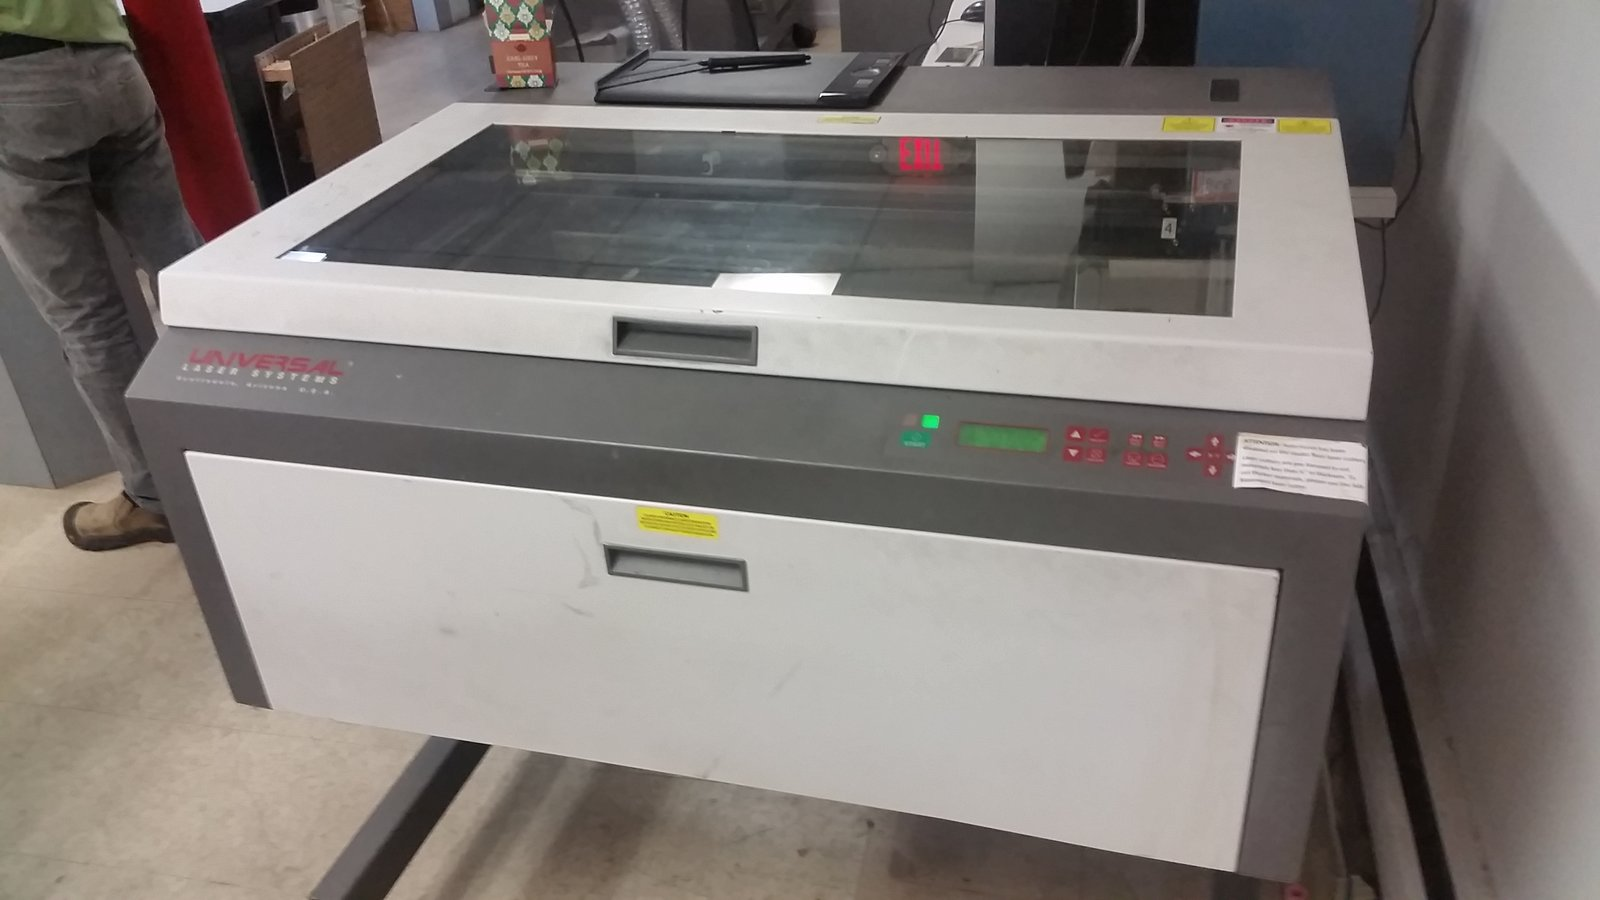 Laser cutter 60 watt universal laser systems x2 makehaven for Universal laser systems